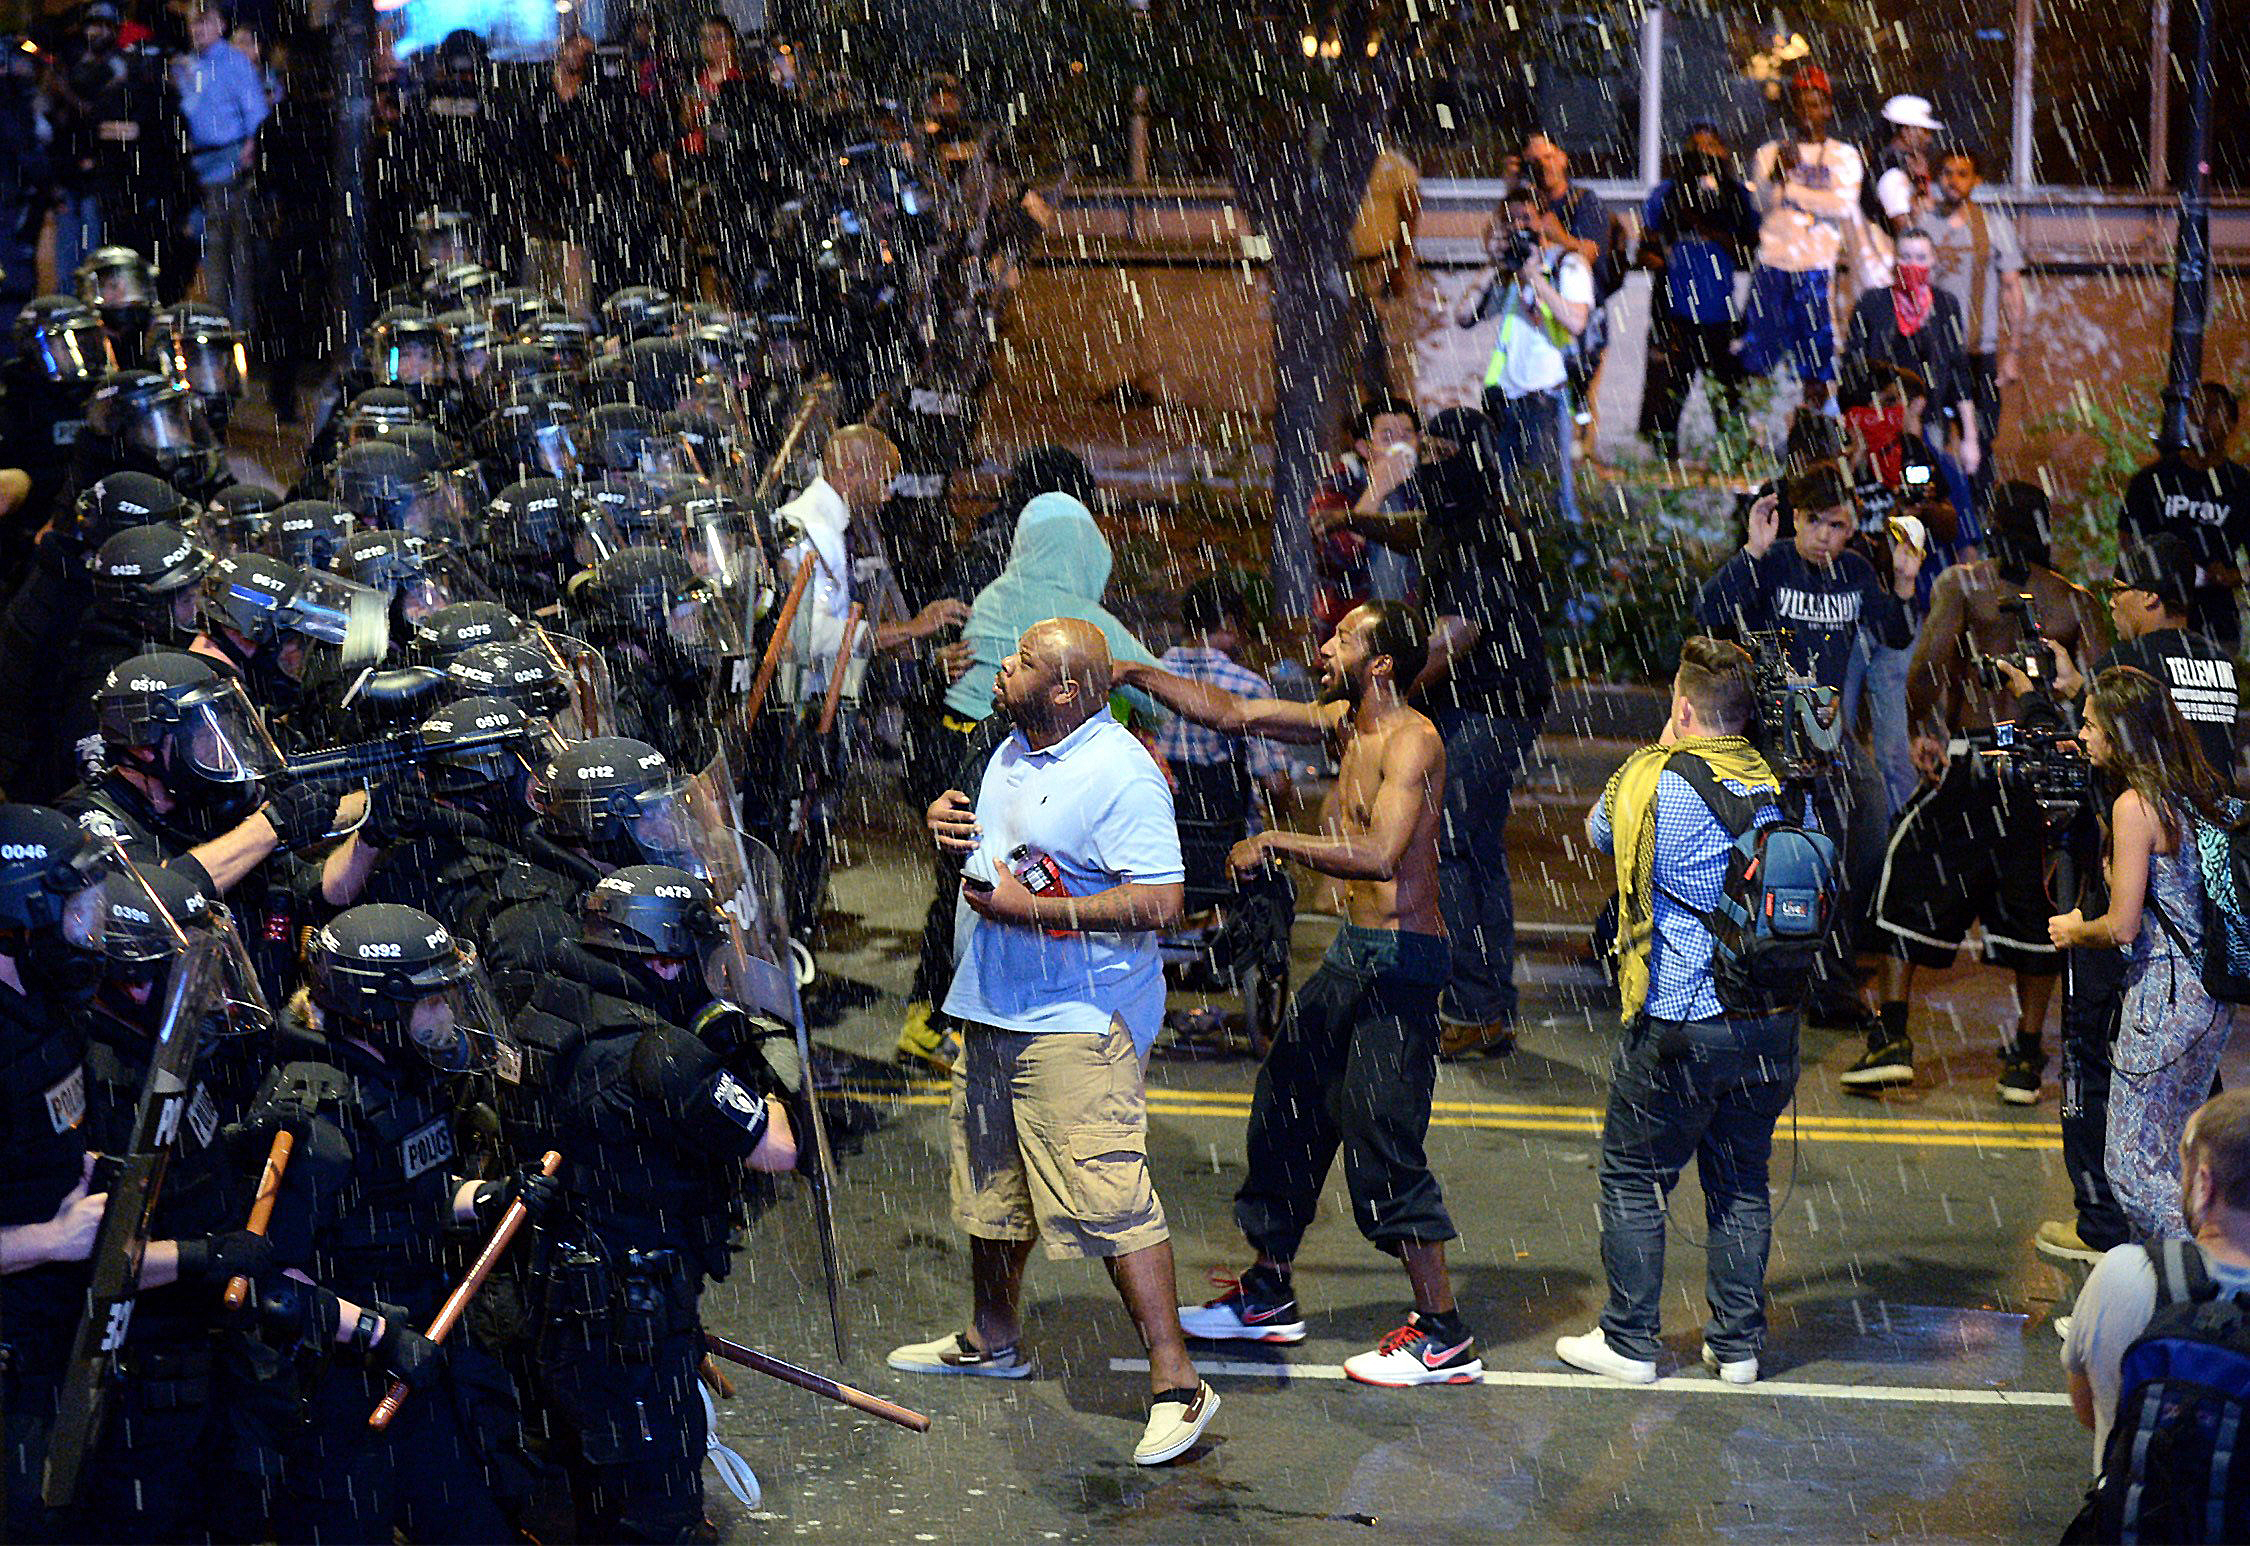 Debris falls upon police officers and protesters as officers began to push protesters from the intersection in Charlotte, N.C. on Sept. 21, 2016.